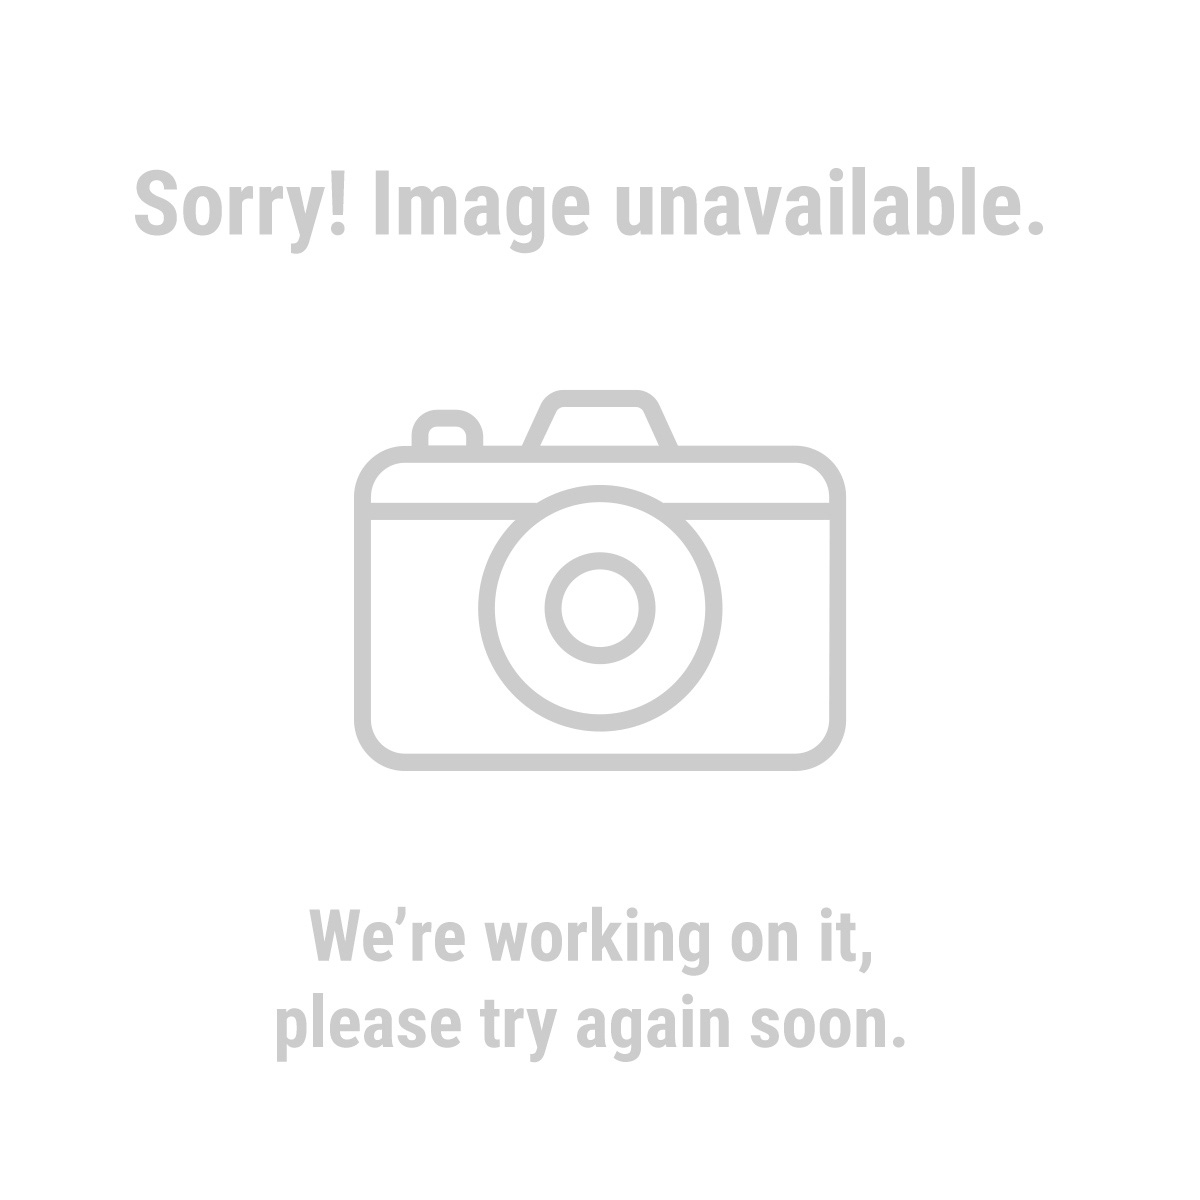 Central Pneumatic® 61962 25 ft. x 3/8 in. Heavy Duty PVC/Rubber Hybrid Air Hose